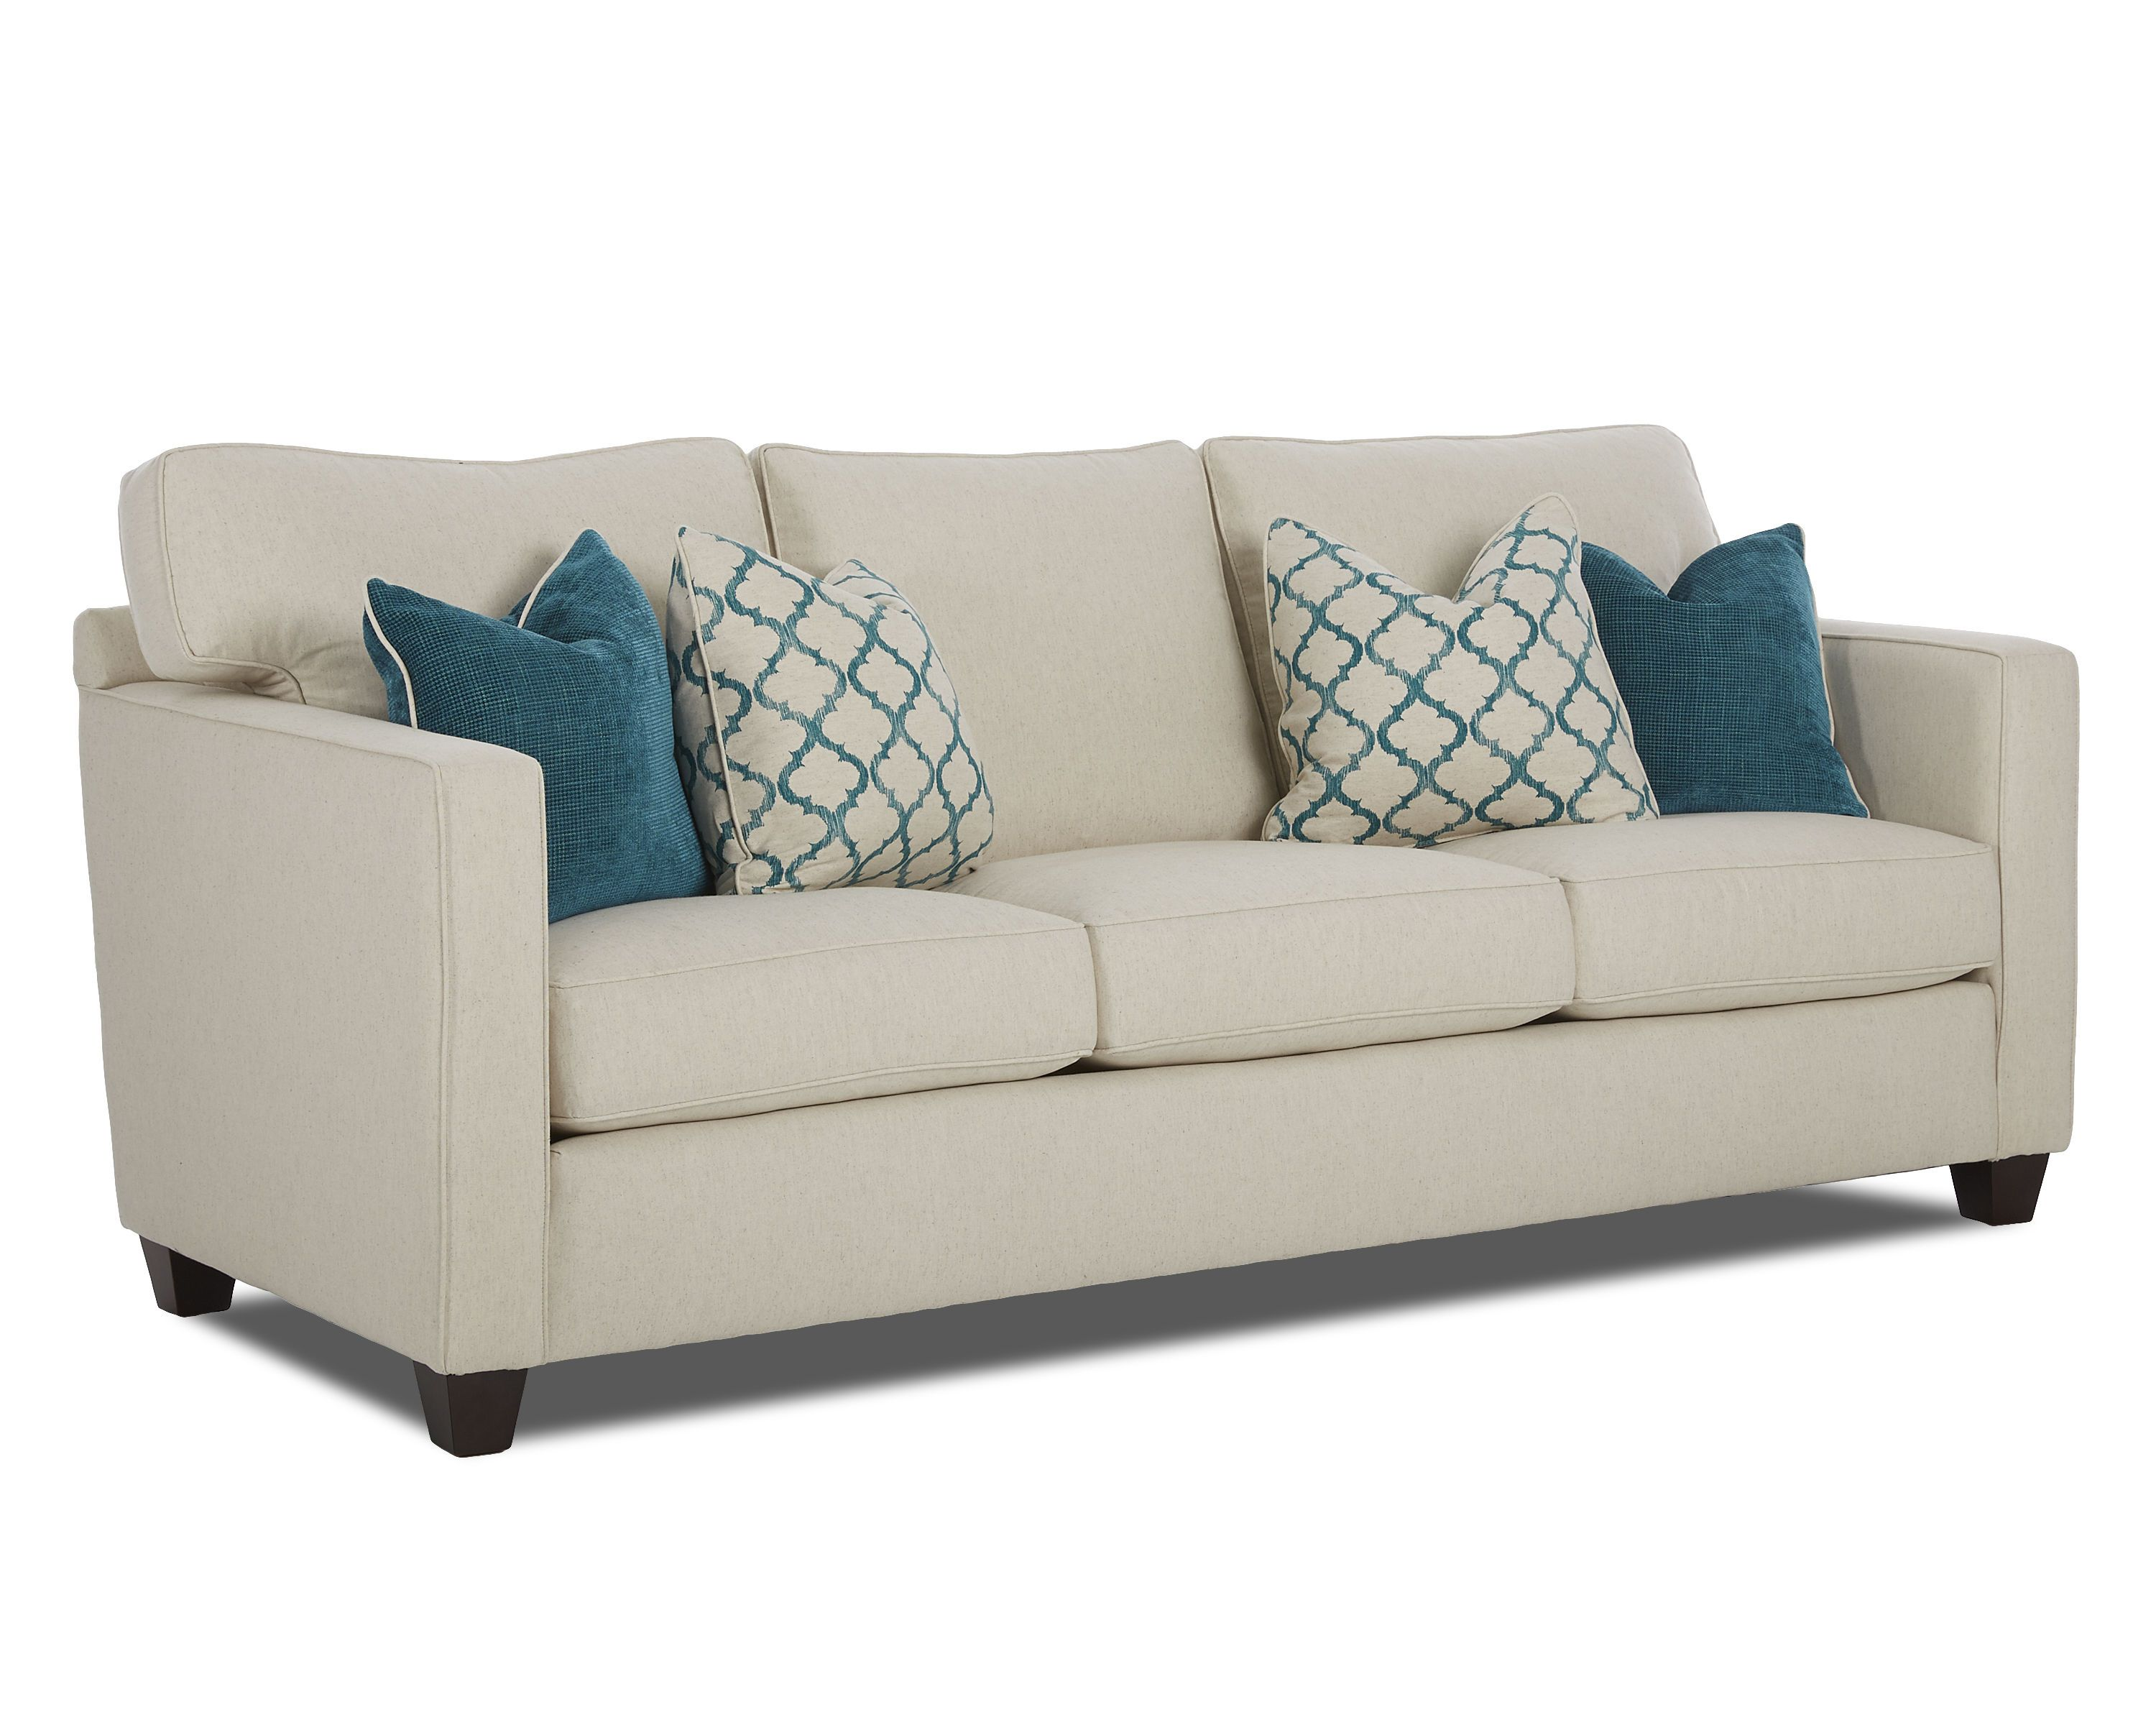 Shop For Klaussner JEFFREY Sofa, S, And Other Living Room Sofas At Furniture  Showcase In Stillwater, OK.